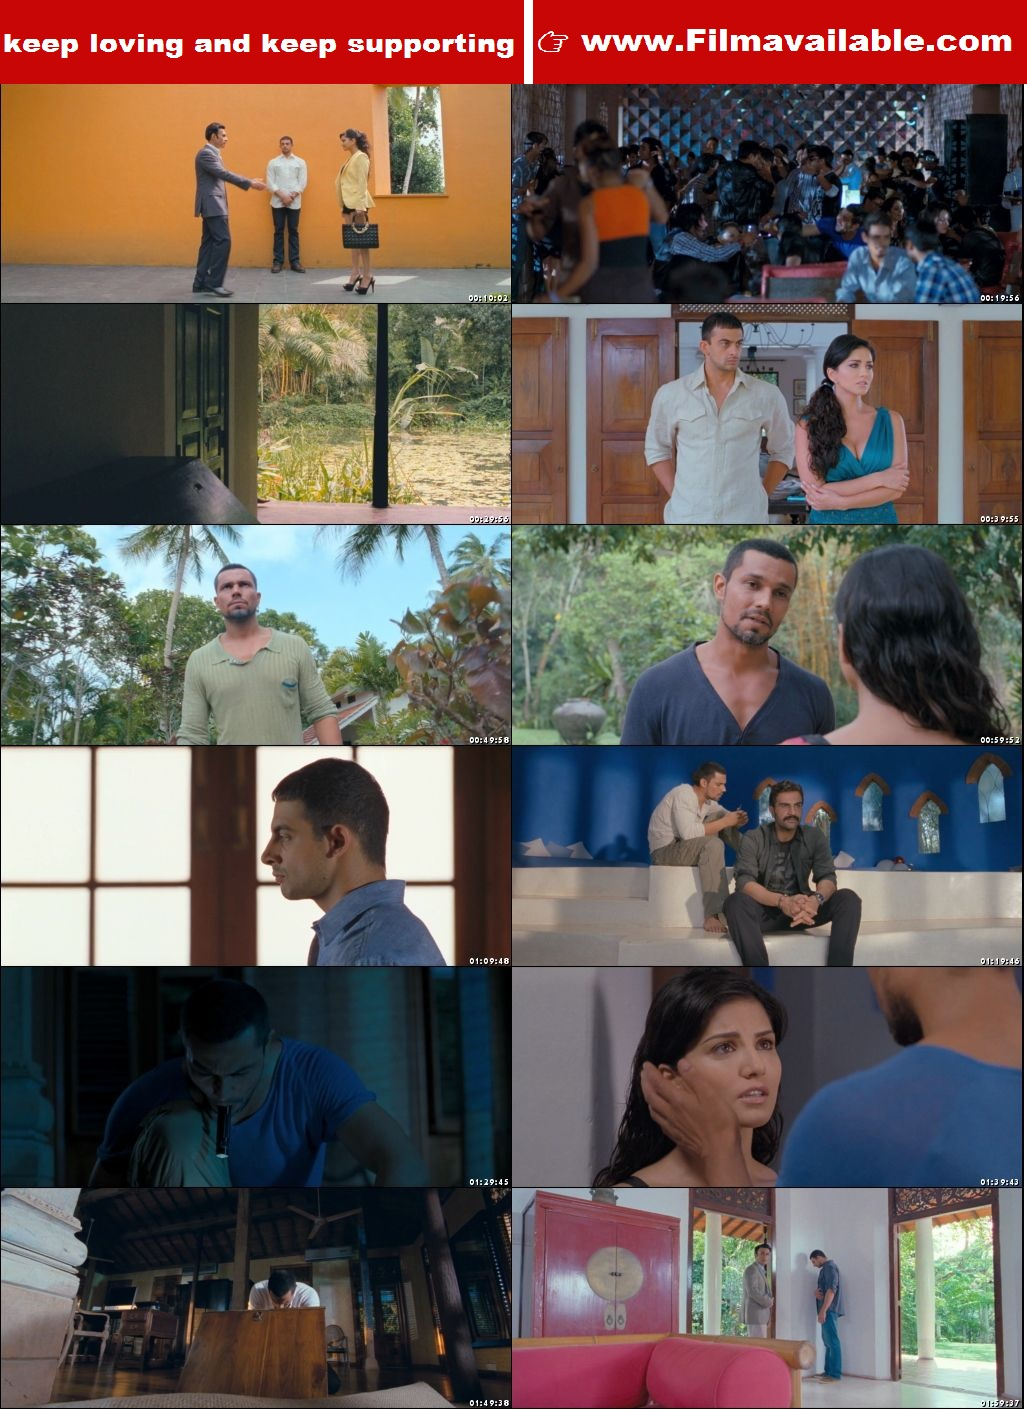 Jism 2 2012 Full Movie Download 720p HDRip, BluRay, DVDRip, mkv, Mp4 1080p Full Hd